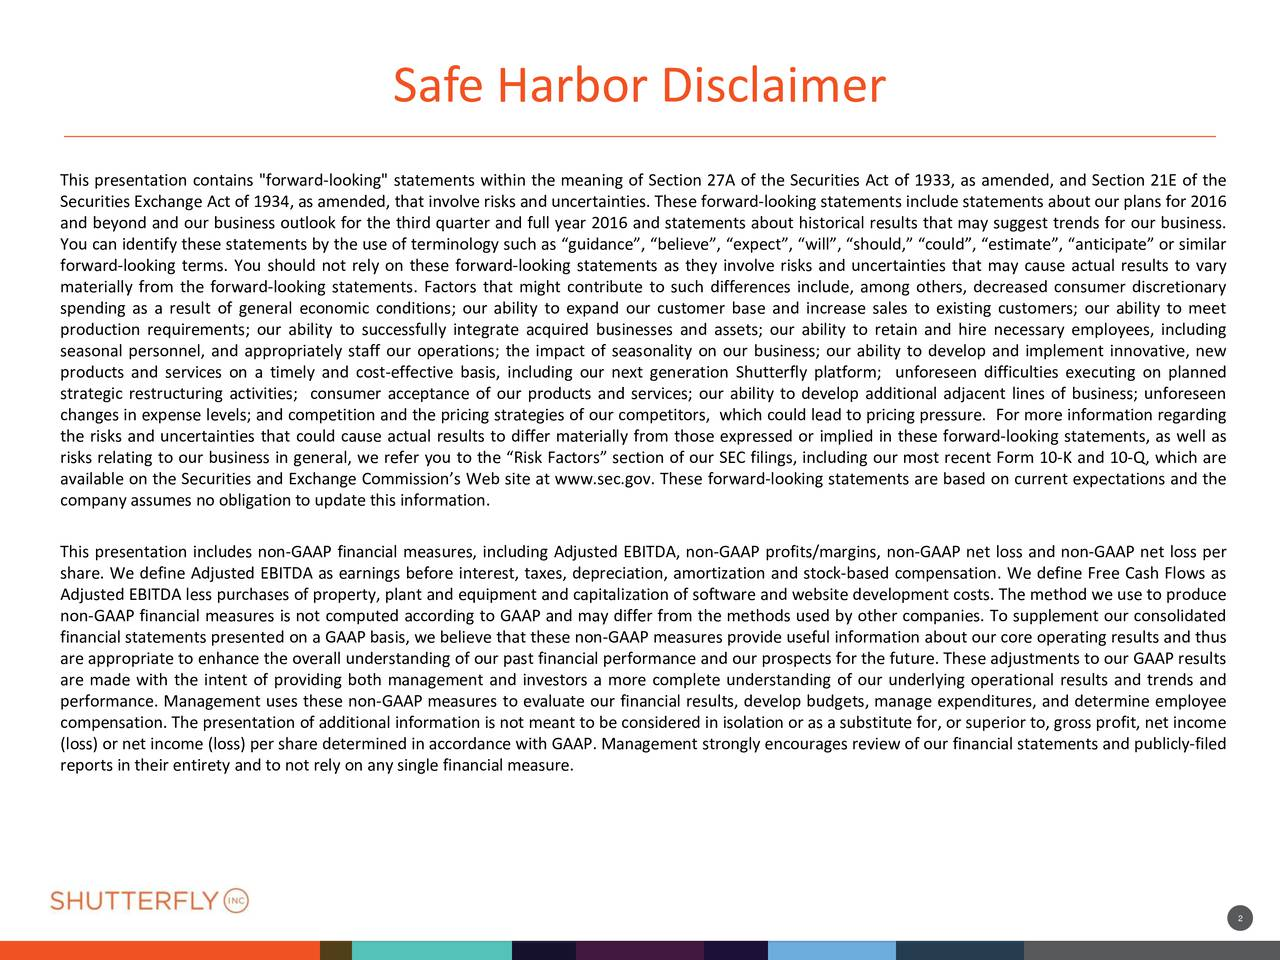 "255 83 255 35 Safe Harbor Disclaimer This presentation contains ""forward-looking"" statements within the meaning of Section 27A of the Securities Act of 1933, as amended, and Section 21E of the Securities Exchange Act of 1934, as amended, that involve risks and uncertainties. These forward-looking statements include statements about our plans for 2016 21 85 and beyond and our business outlook for the third quarter and full year 2016 and statements about historical results that may suggest trends for our business. 17 194 44 185 You can identify these statements by the use of terminology such as guidance, believe, expect, will, should, could, estimate, anticipate or similar forward-looking terms. You should not rely on these forward-looking statements as they involve risks and uncertainties that may cause actual results to vary materially from the forward-looking statements. Factors that might contribute to such differences include, among others, decreased consumer discretionary spending as a result of general economic conditions; our ability to expand our customer base and increase sales to existing customers; our ability to meet production requirements; our ability to successfully integrate acquired businesses and assets; our ability to retain and hire necessary employees, including seasonal personnel, and appropriately staff our operations; the impact of seasonality on our business; our ability to develop and implement innovative, new 88 64 products and services on a timely and cost-effective basis, including our next generation Shutterfly platform; unforeseen difficulties executing on planned 89 23 strategic restructuring activities; consumer acceptance of our products and services; our ability to develop additional adjacent lines of business; unforeseen 91 61 changes in expense levels; and competition and the pricing strategies of our competitors, which could lead to pricing pressure. For more information regarding the risks and uncertainties that could cause actual results to differ materially from those expressed or implied in these forward-looking statements, as well as risks relating to our business in general, we refer you to the Risk Factors section of our SEC filings, including our most recent Form 10-K and 10-Q, which are available on the Securities and Exchange Commissions Web site at www.sec.gov. These forward-looking statements are based on current expectations and the company assumes no obligation to update this information. 27 108 16 173 This presentation includes non-GAAP financial measures, including Adjusted EBITDA, non-GAAP profits/margins, non-GAAP net loss and non-GAAP net loss per 53 222 share. We define Adjusted EBITDA as earnings before interest, taxes, depreciation, amortization and stock-based compensation. We define Free Cash Flows as Adjusted EBITDA less purchases of property, plant and equipment and capitalization of software and website development costs. The method we use to produce non-GAAP financial measures is not computed according to GAAP and may differ from the methods used by other companies. To supplement our consolidated financial statements presented on a GAAP basis, we believe that these non-GAAP measures provide useful information about our core operating results and thus are appropriate to enhance the overall understanding of our past financial performance and our prospects for the future. These adjustments to our GAAP results are made with the intent of providing both management and investors a more complete understanding of our underlying operational results and trends and 37 performance. Management uses these non-GAAP measures to evaluate our financial results, develop budgets, manage expenditures, and determine employee 60 compensation. The presentation of additional information is not meant to be considered in isolation or as a substitute for, or superior to, gross profit, net income 79 (loss) or net income (loss) per share determined in accordance with GAAP. Management strongly encourages review of our financial statements and publicly-filed reports in their entirety and to not rely on any single financial measure. 80 63 25"